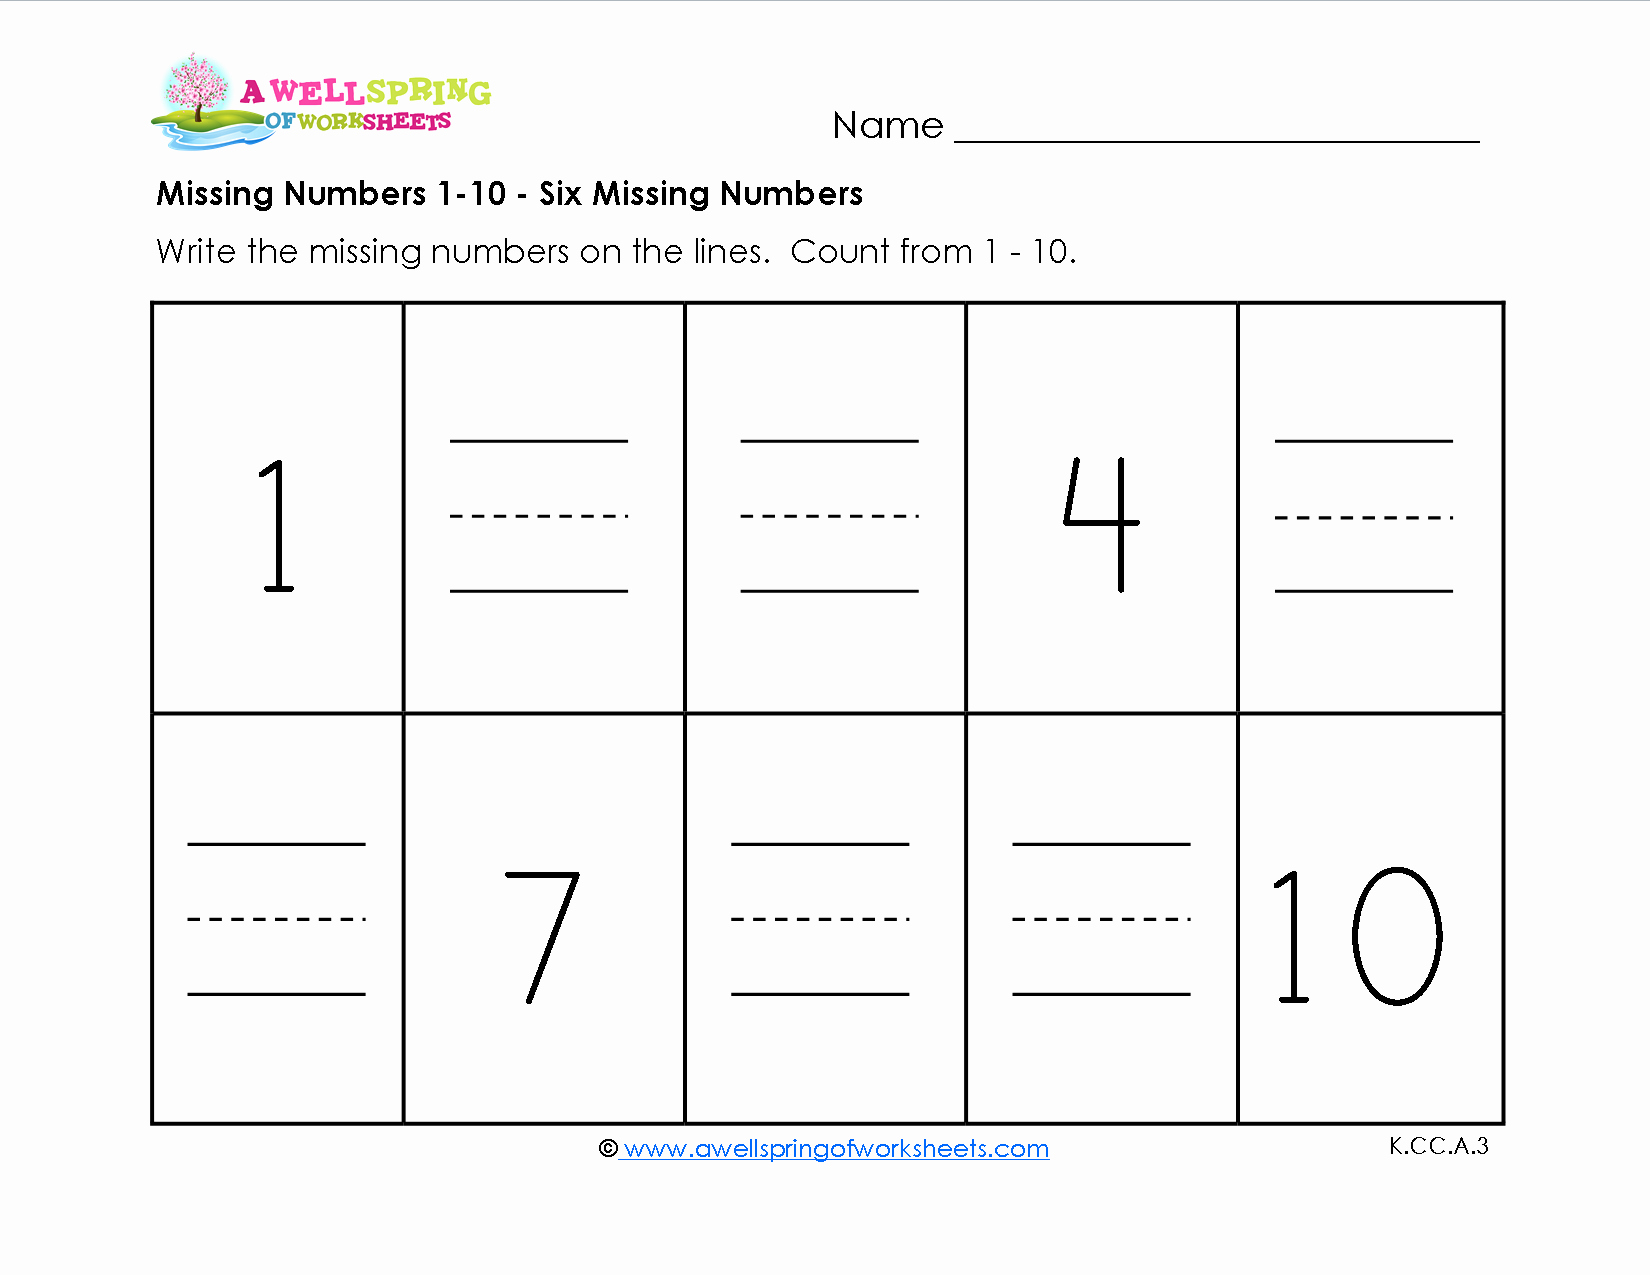 Missing Number Worksheets 1 10 Awesome Missing Numbers 1 10 Kids Fill In the Missing Numbers as